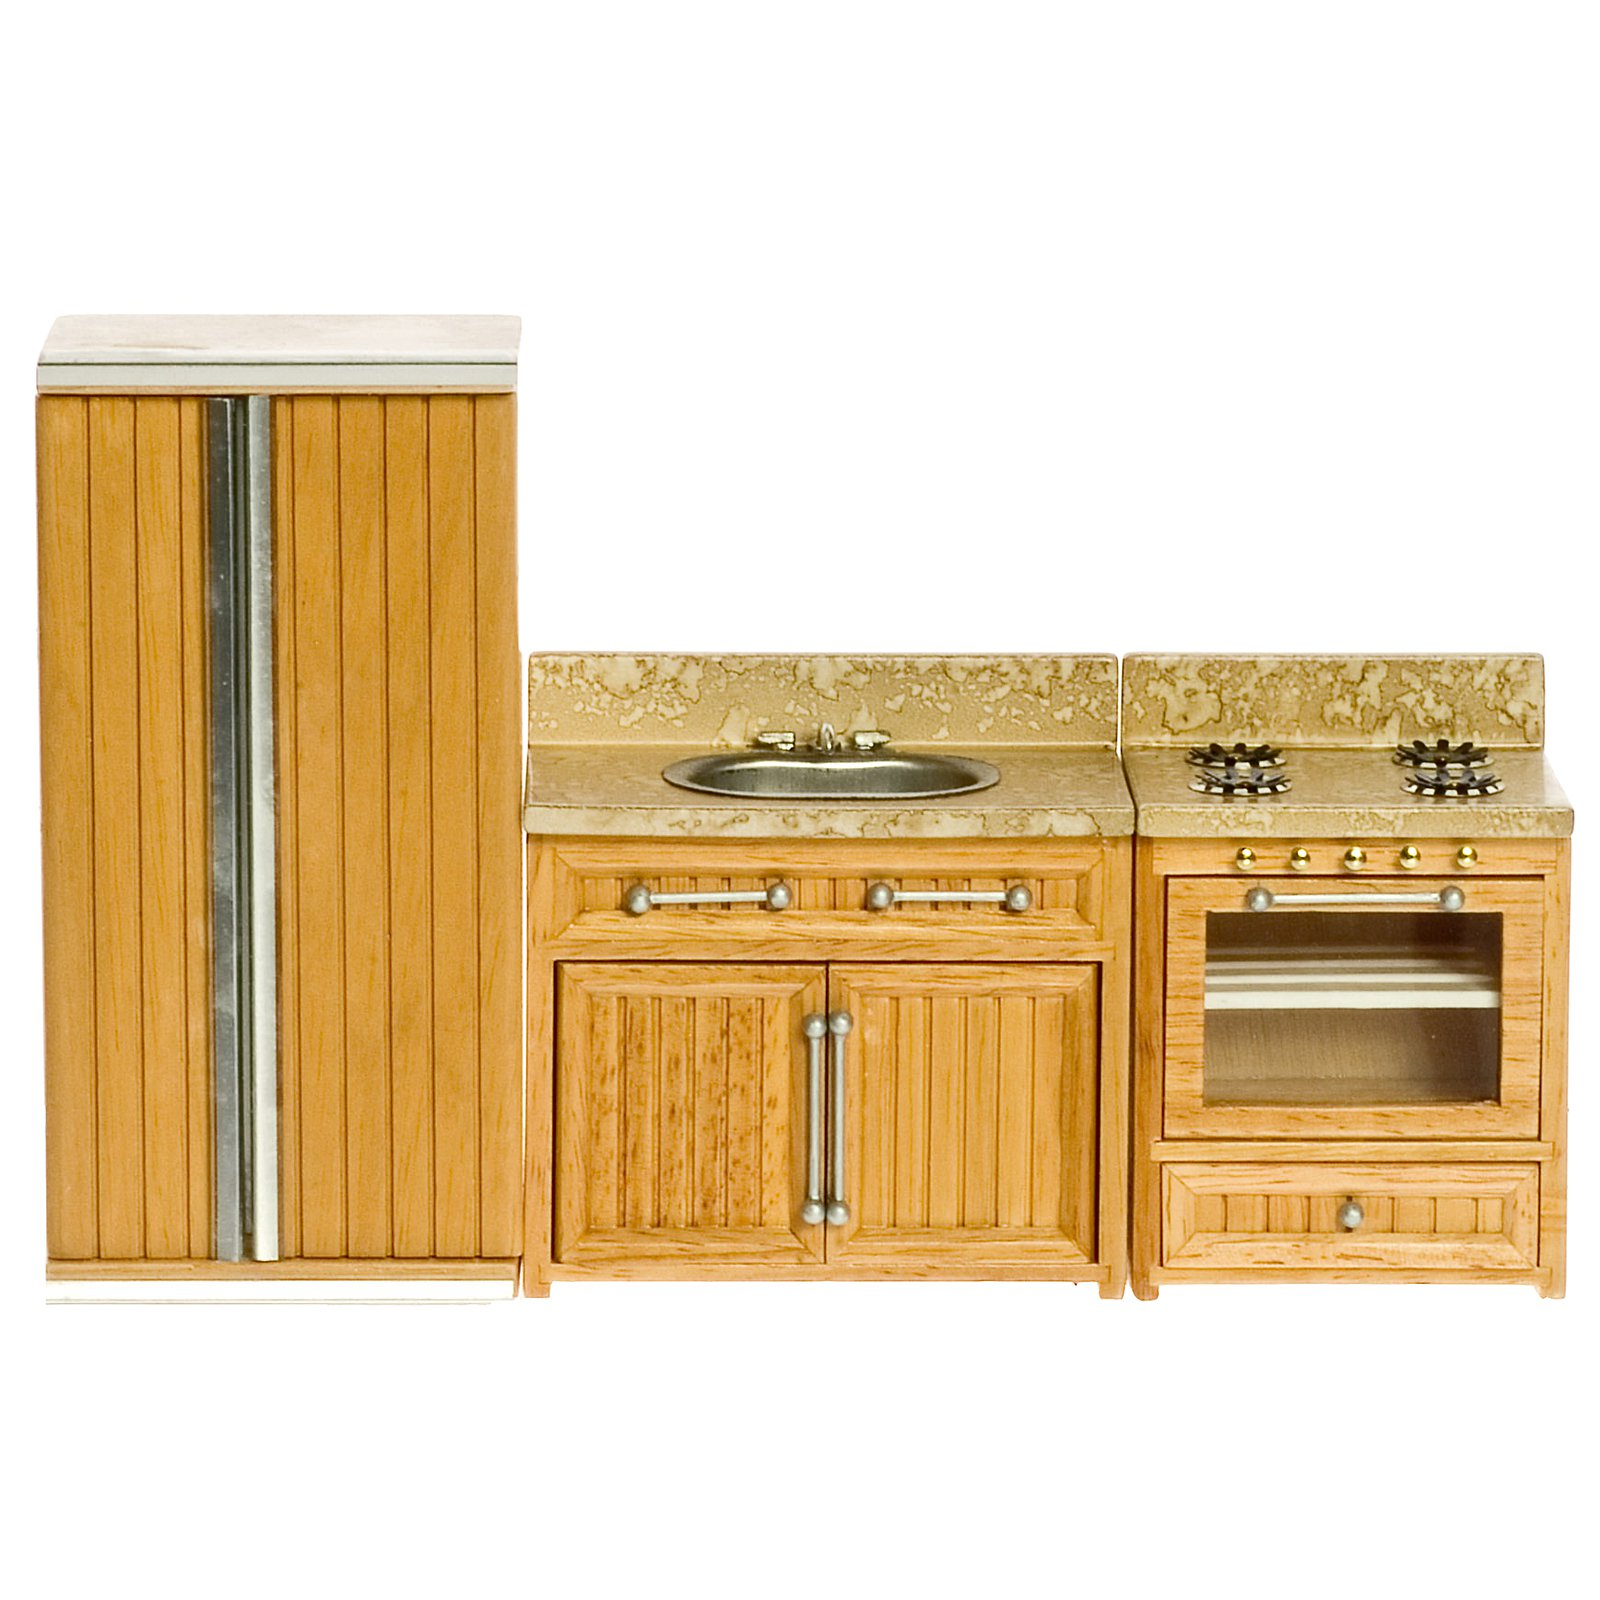 Oak Kitchen Appliance Dollhouse Miniature Set